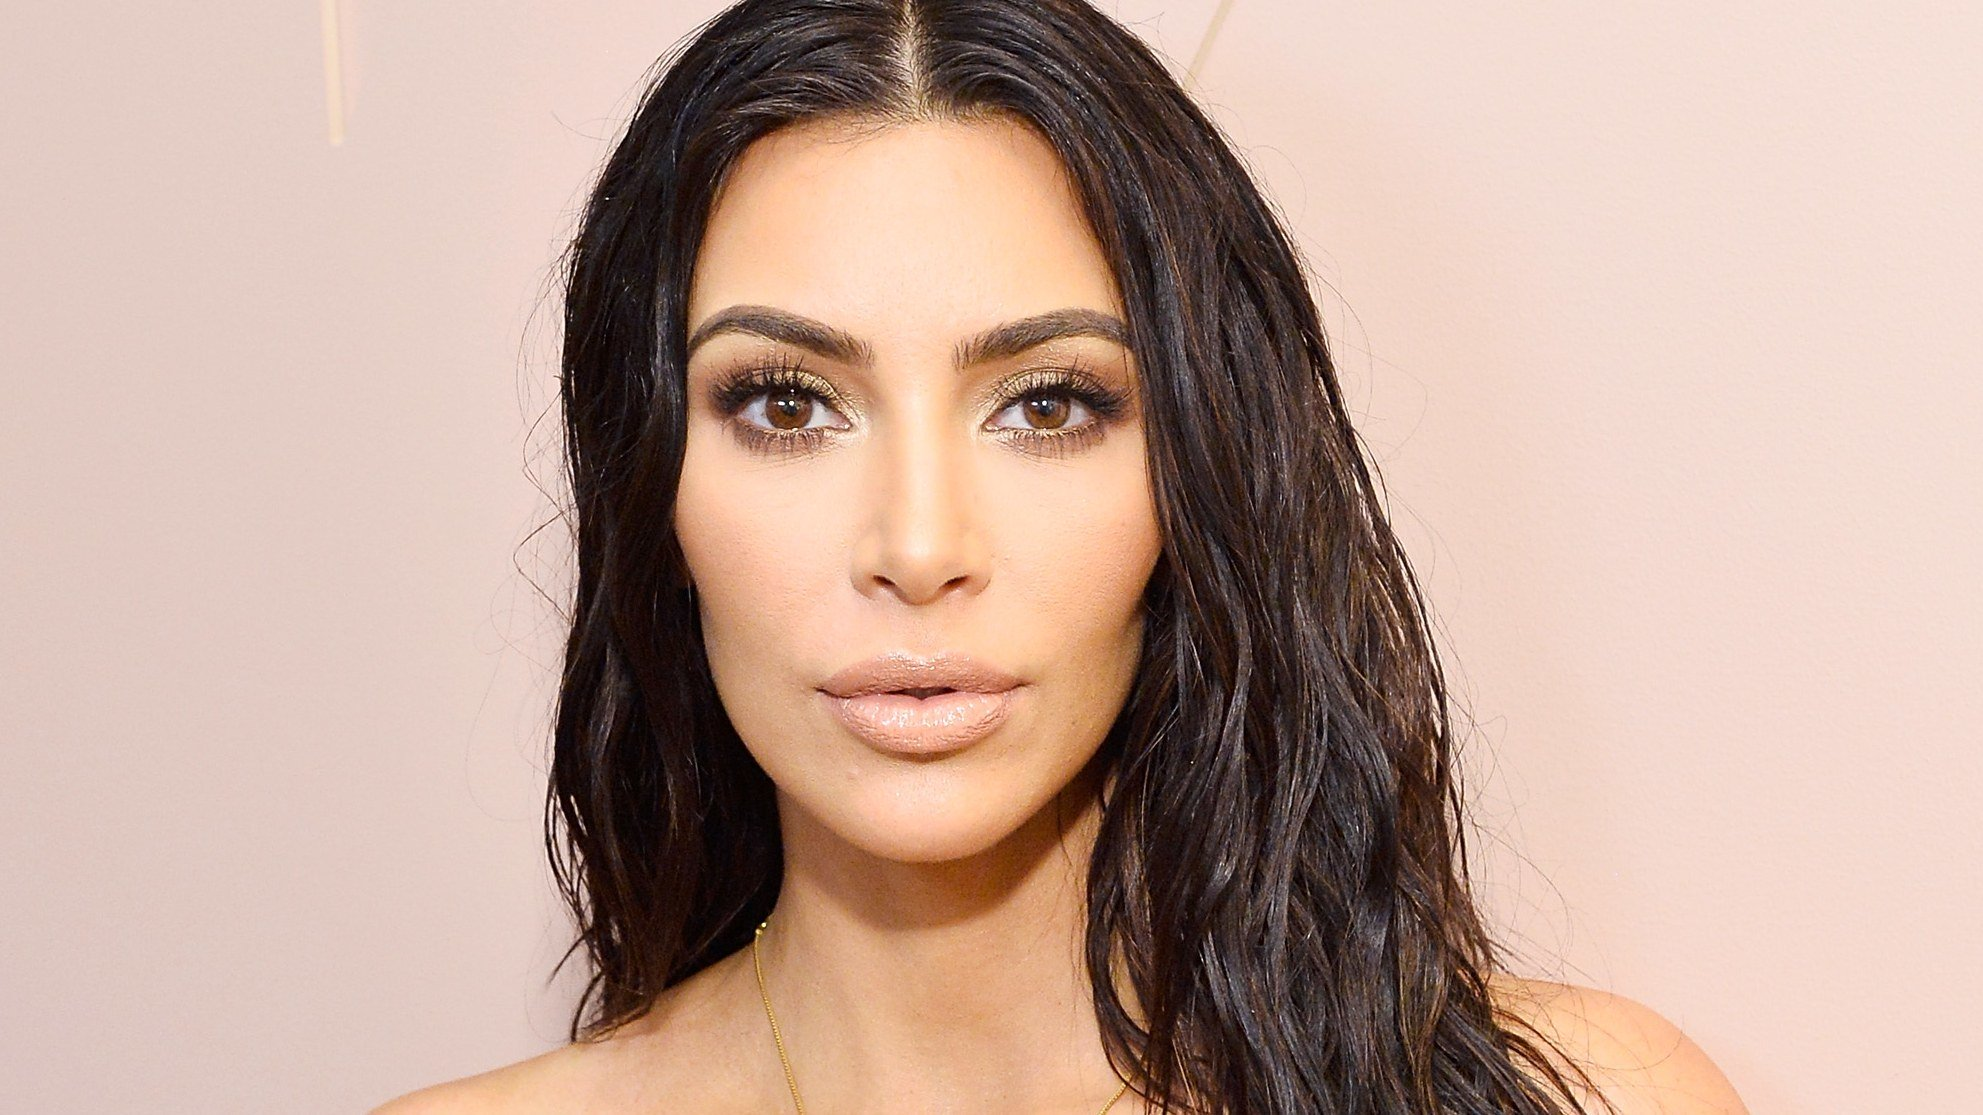 Kim Kardashian is being sued by a major natural beauty brand: https://t.co/UFh7lMf9Hu https://t.co/hFKBuoK7Rb